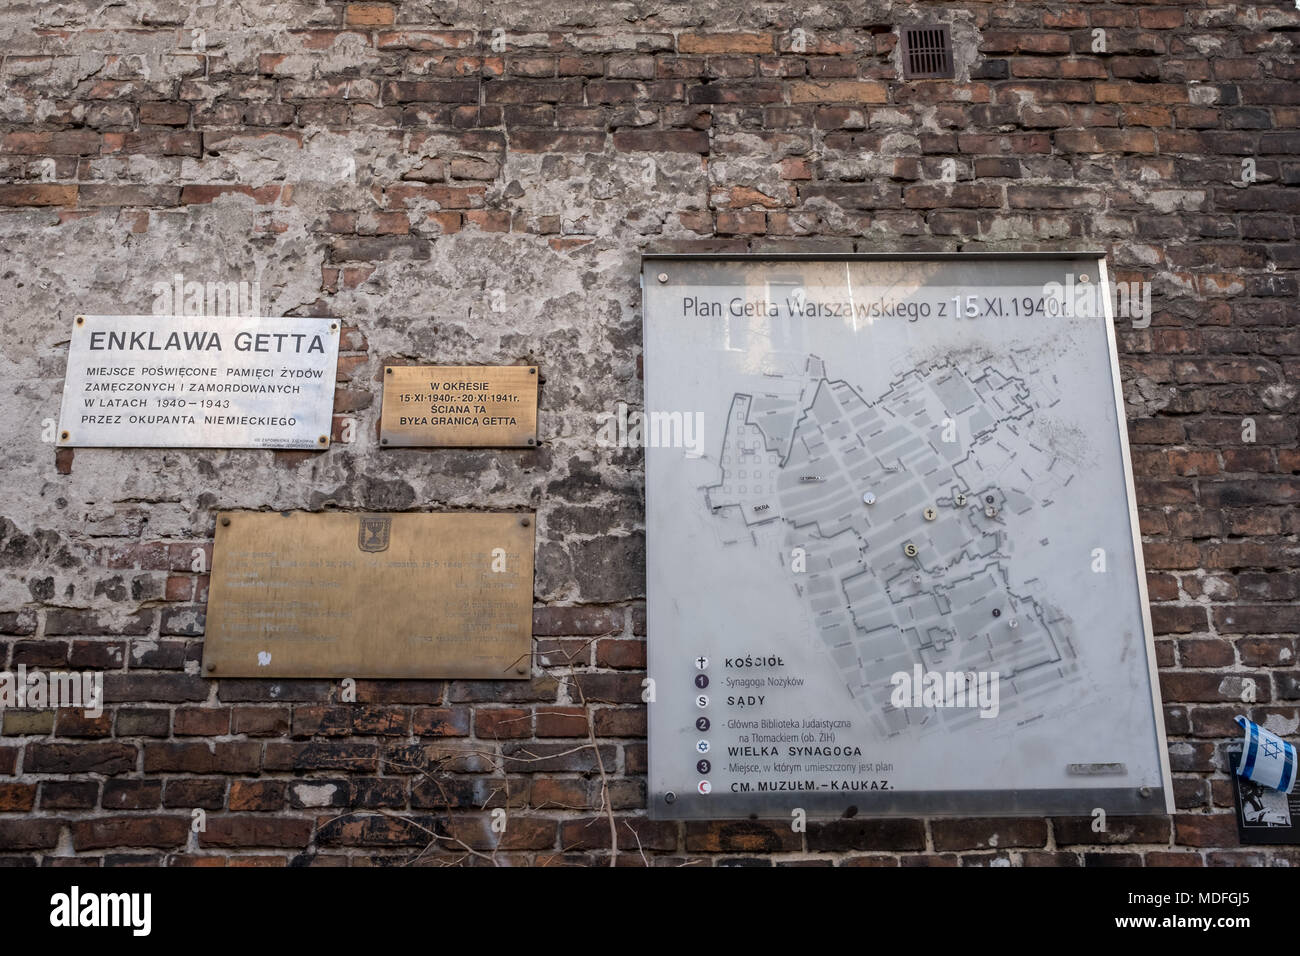 Wall of the historic Jewish Ghetto in Warsaw Poland, showing plaques and map of ghetto on wall. - Stock Image